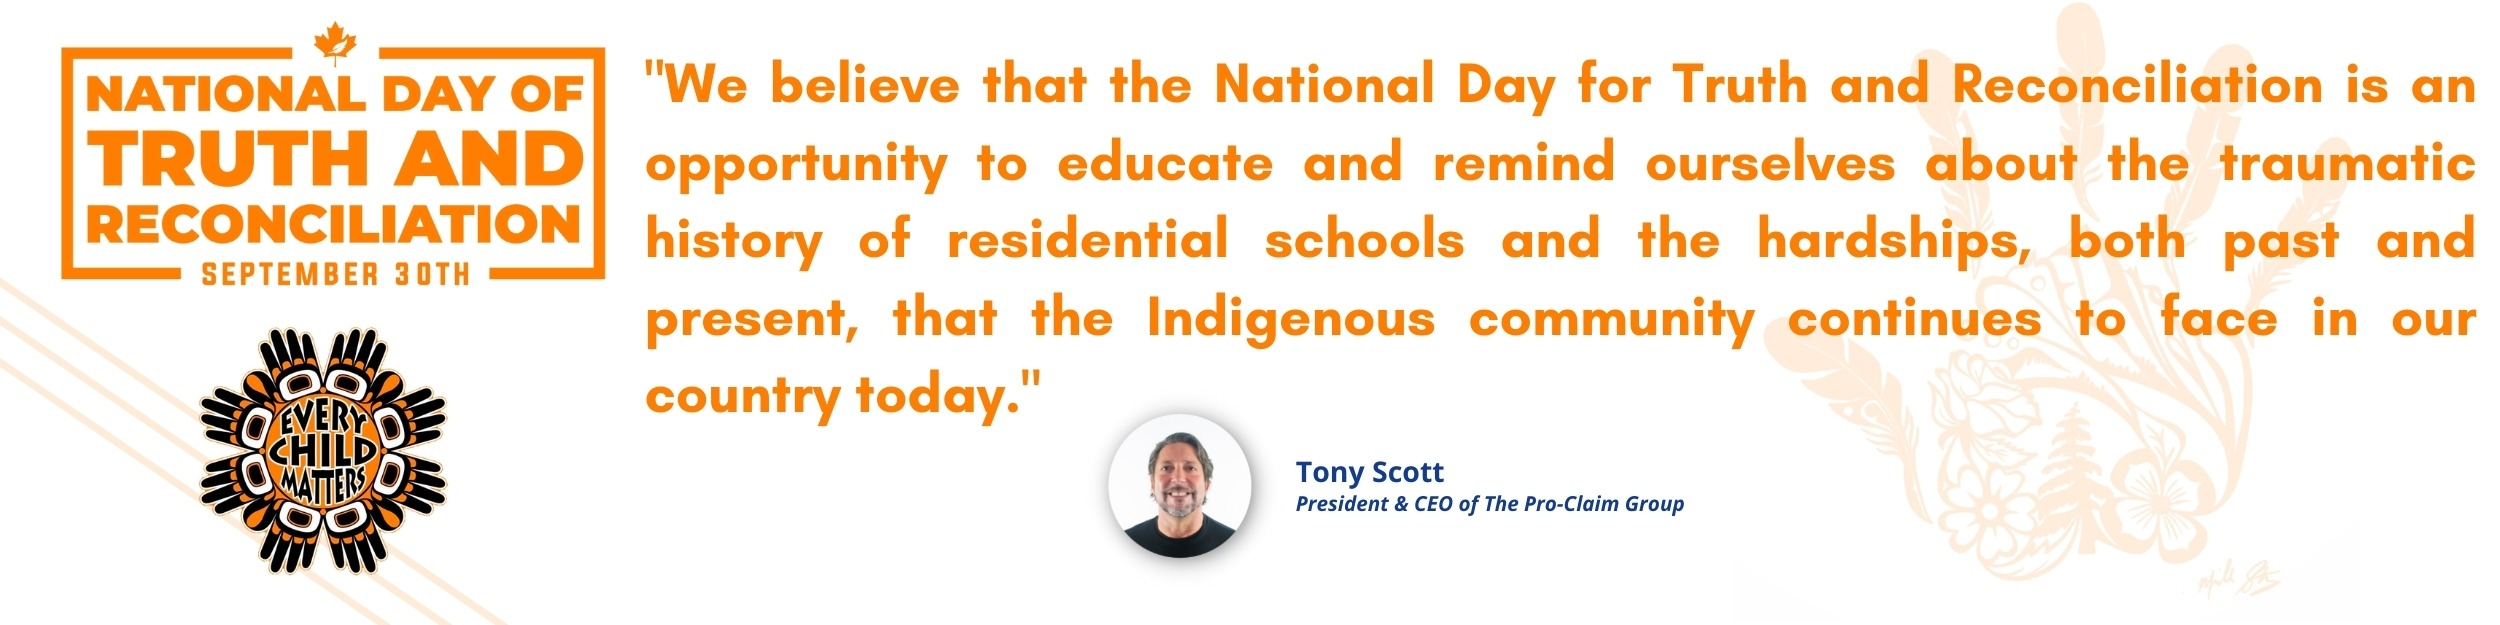 We believe that the National Day for Truth and Reconciliation is an opportunity to educate and remind ourselves about the traumatic history of residential schools and the hardhips, both past and present, that the indigenous community continues to face in our country today